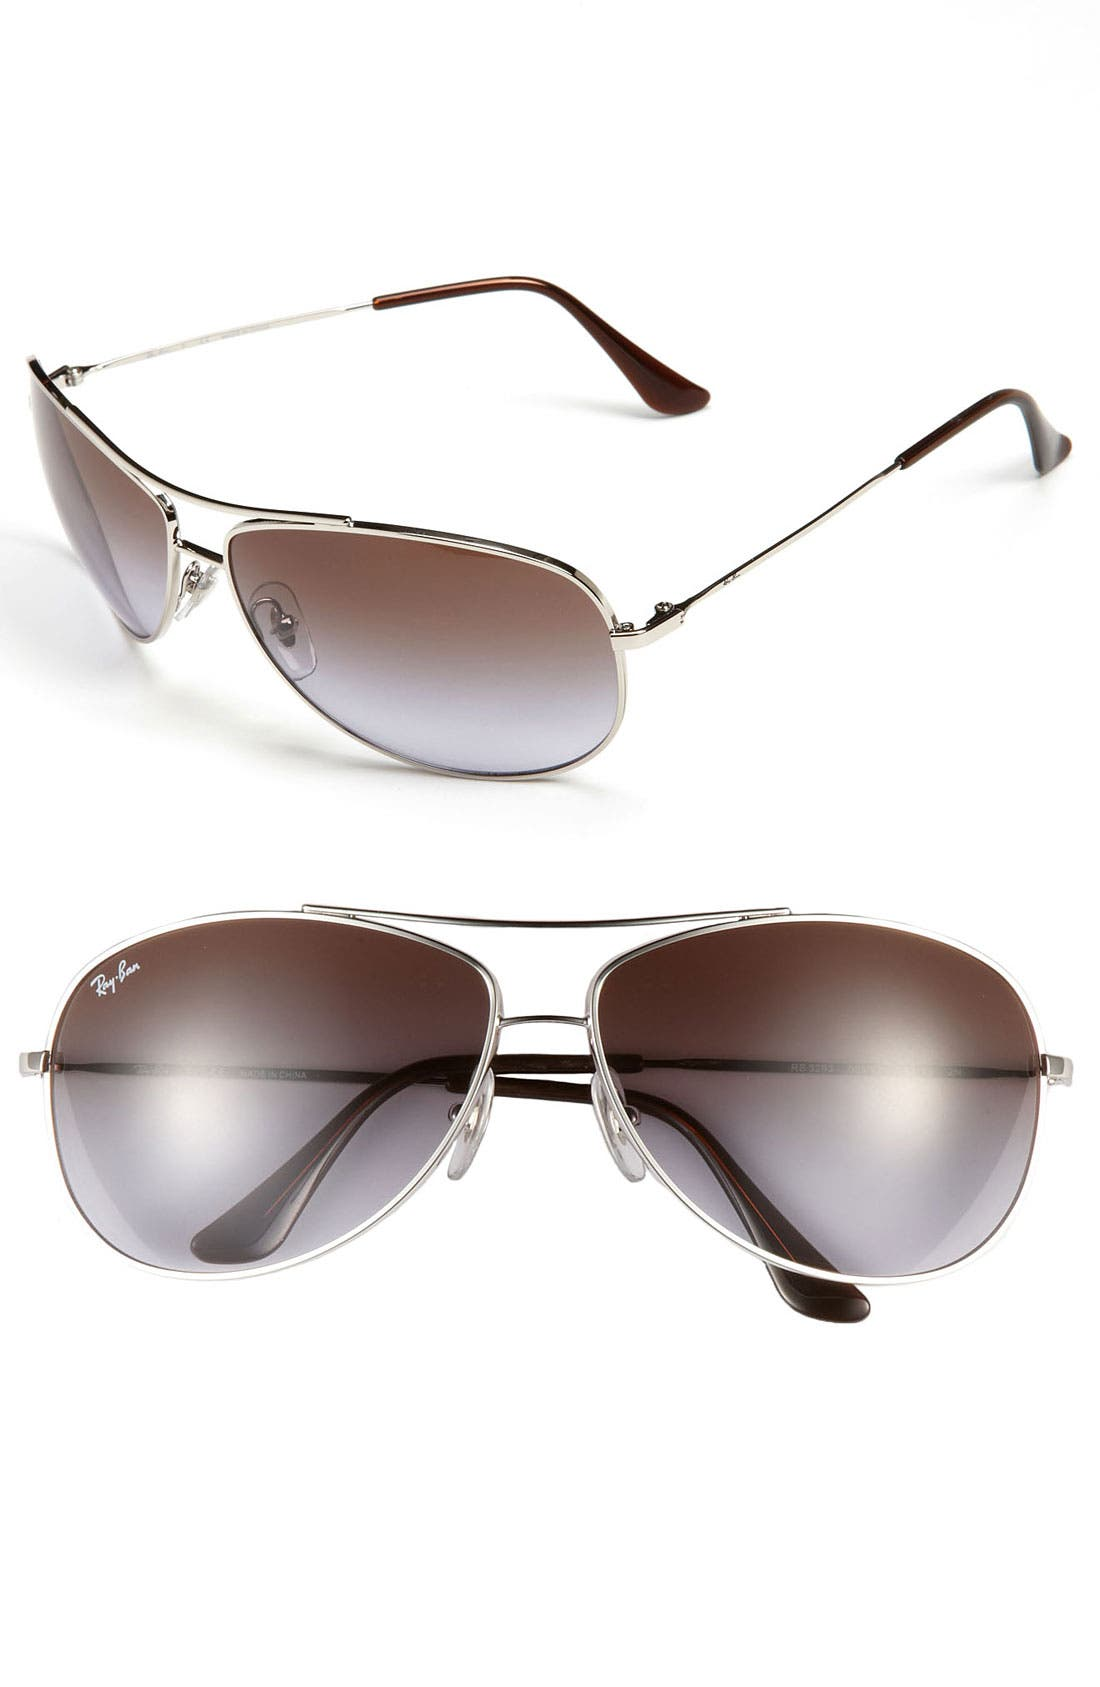 Main Image - Ray-Ban 'Wayfarer' 51mm Sunglasses